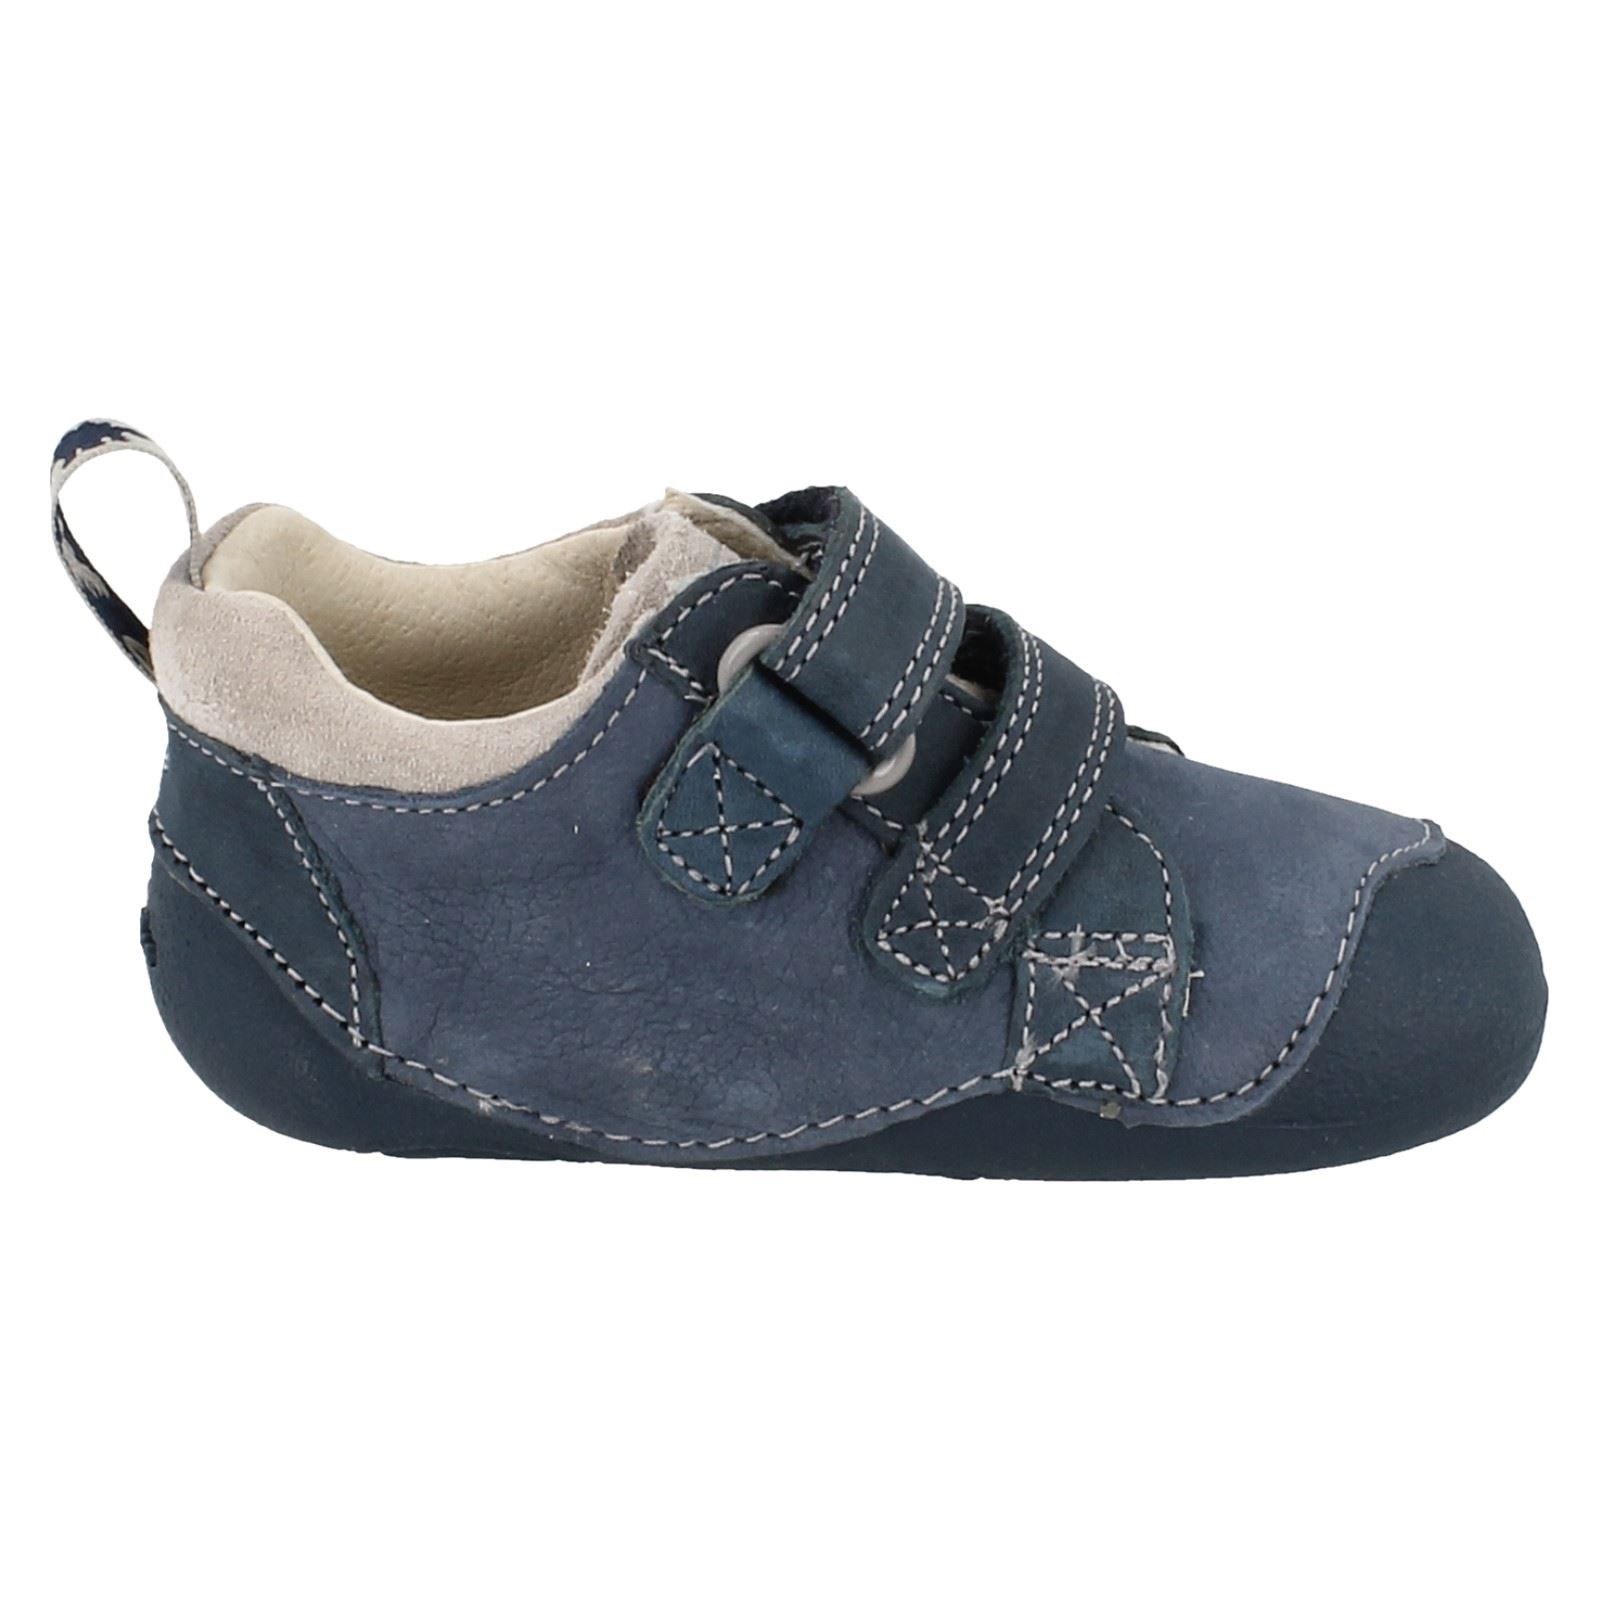 Clarks First Shoes Boys Infant Saurus Boy Casual